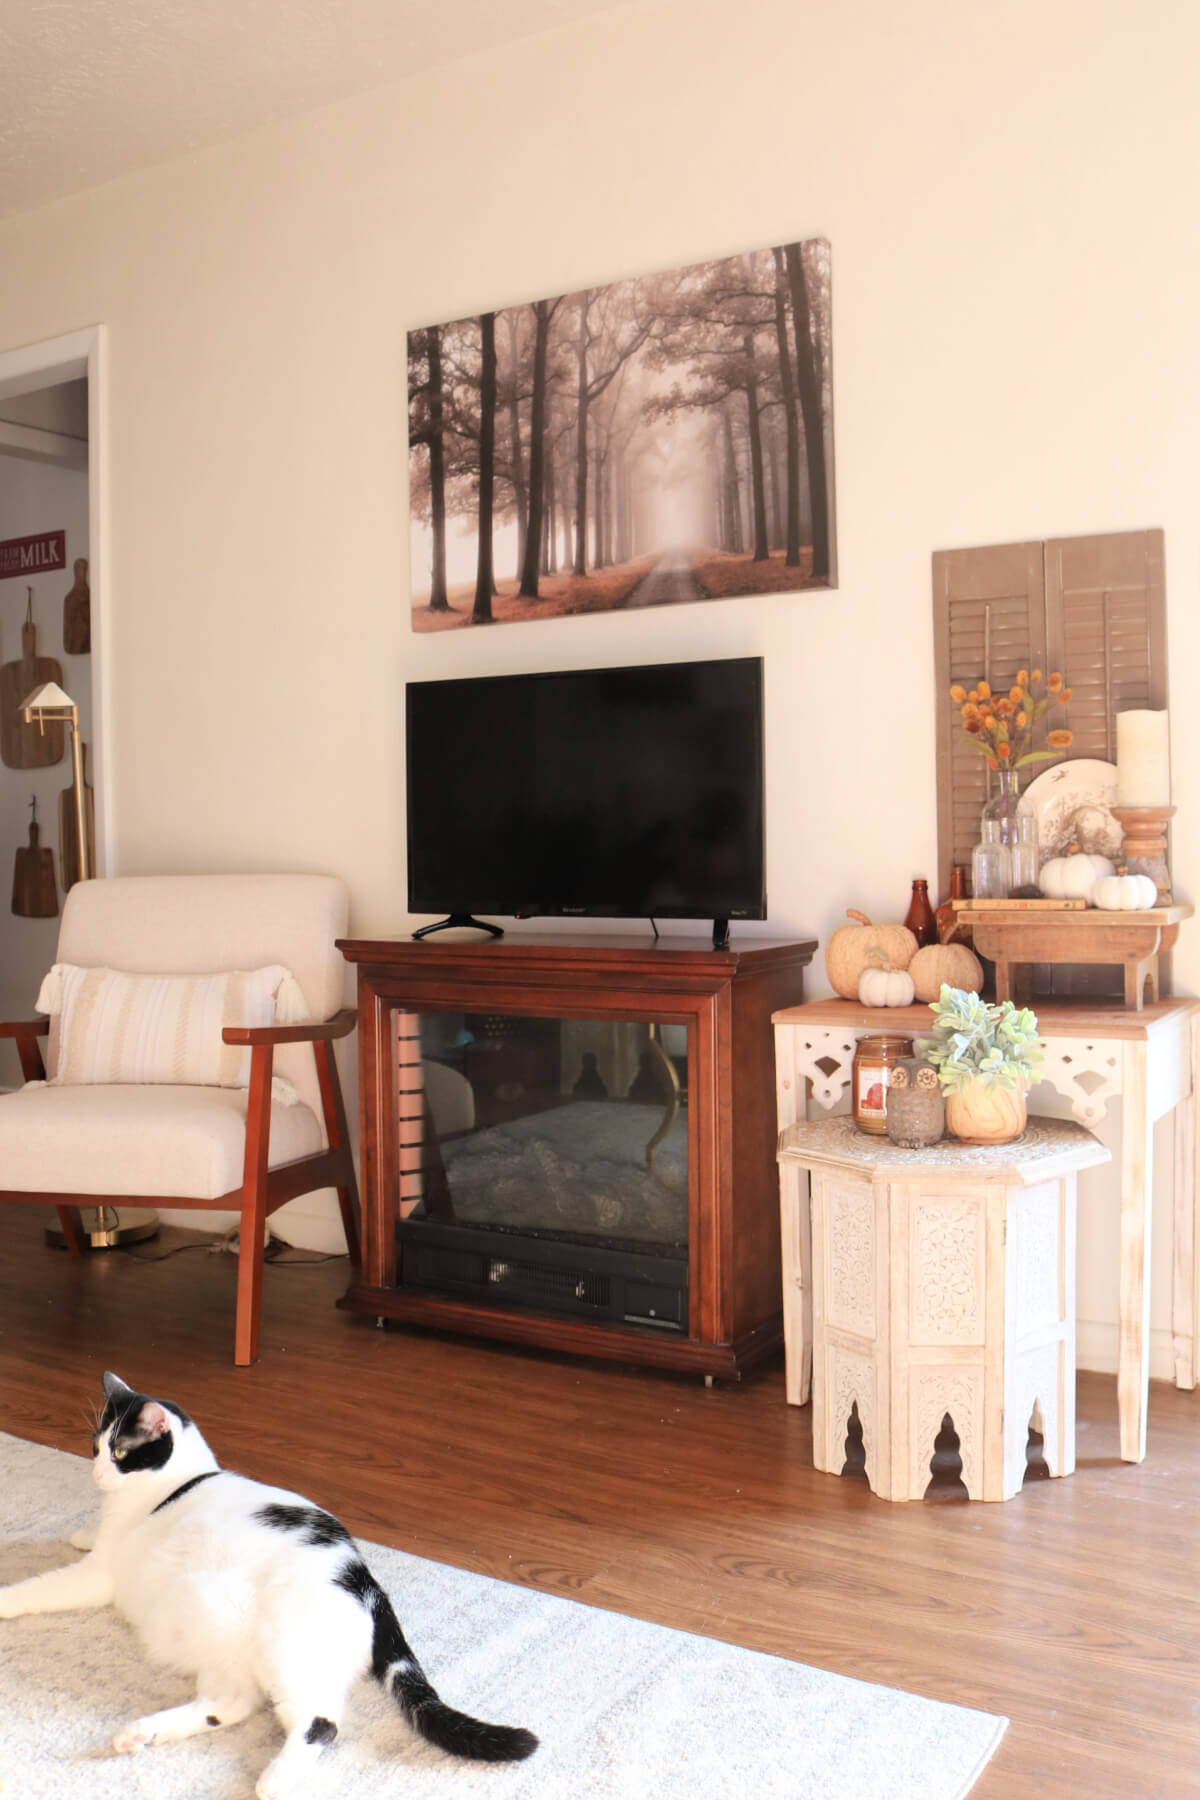 More Fall Decor In The Living Room